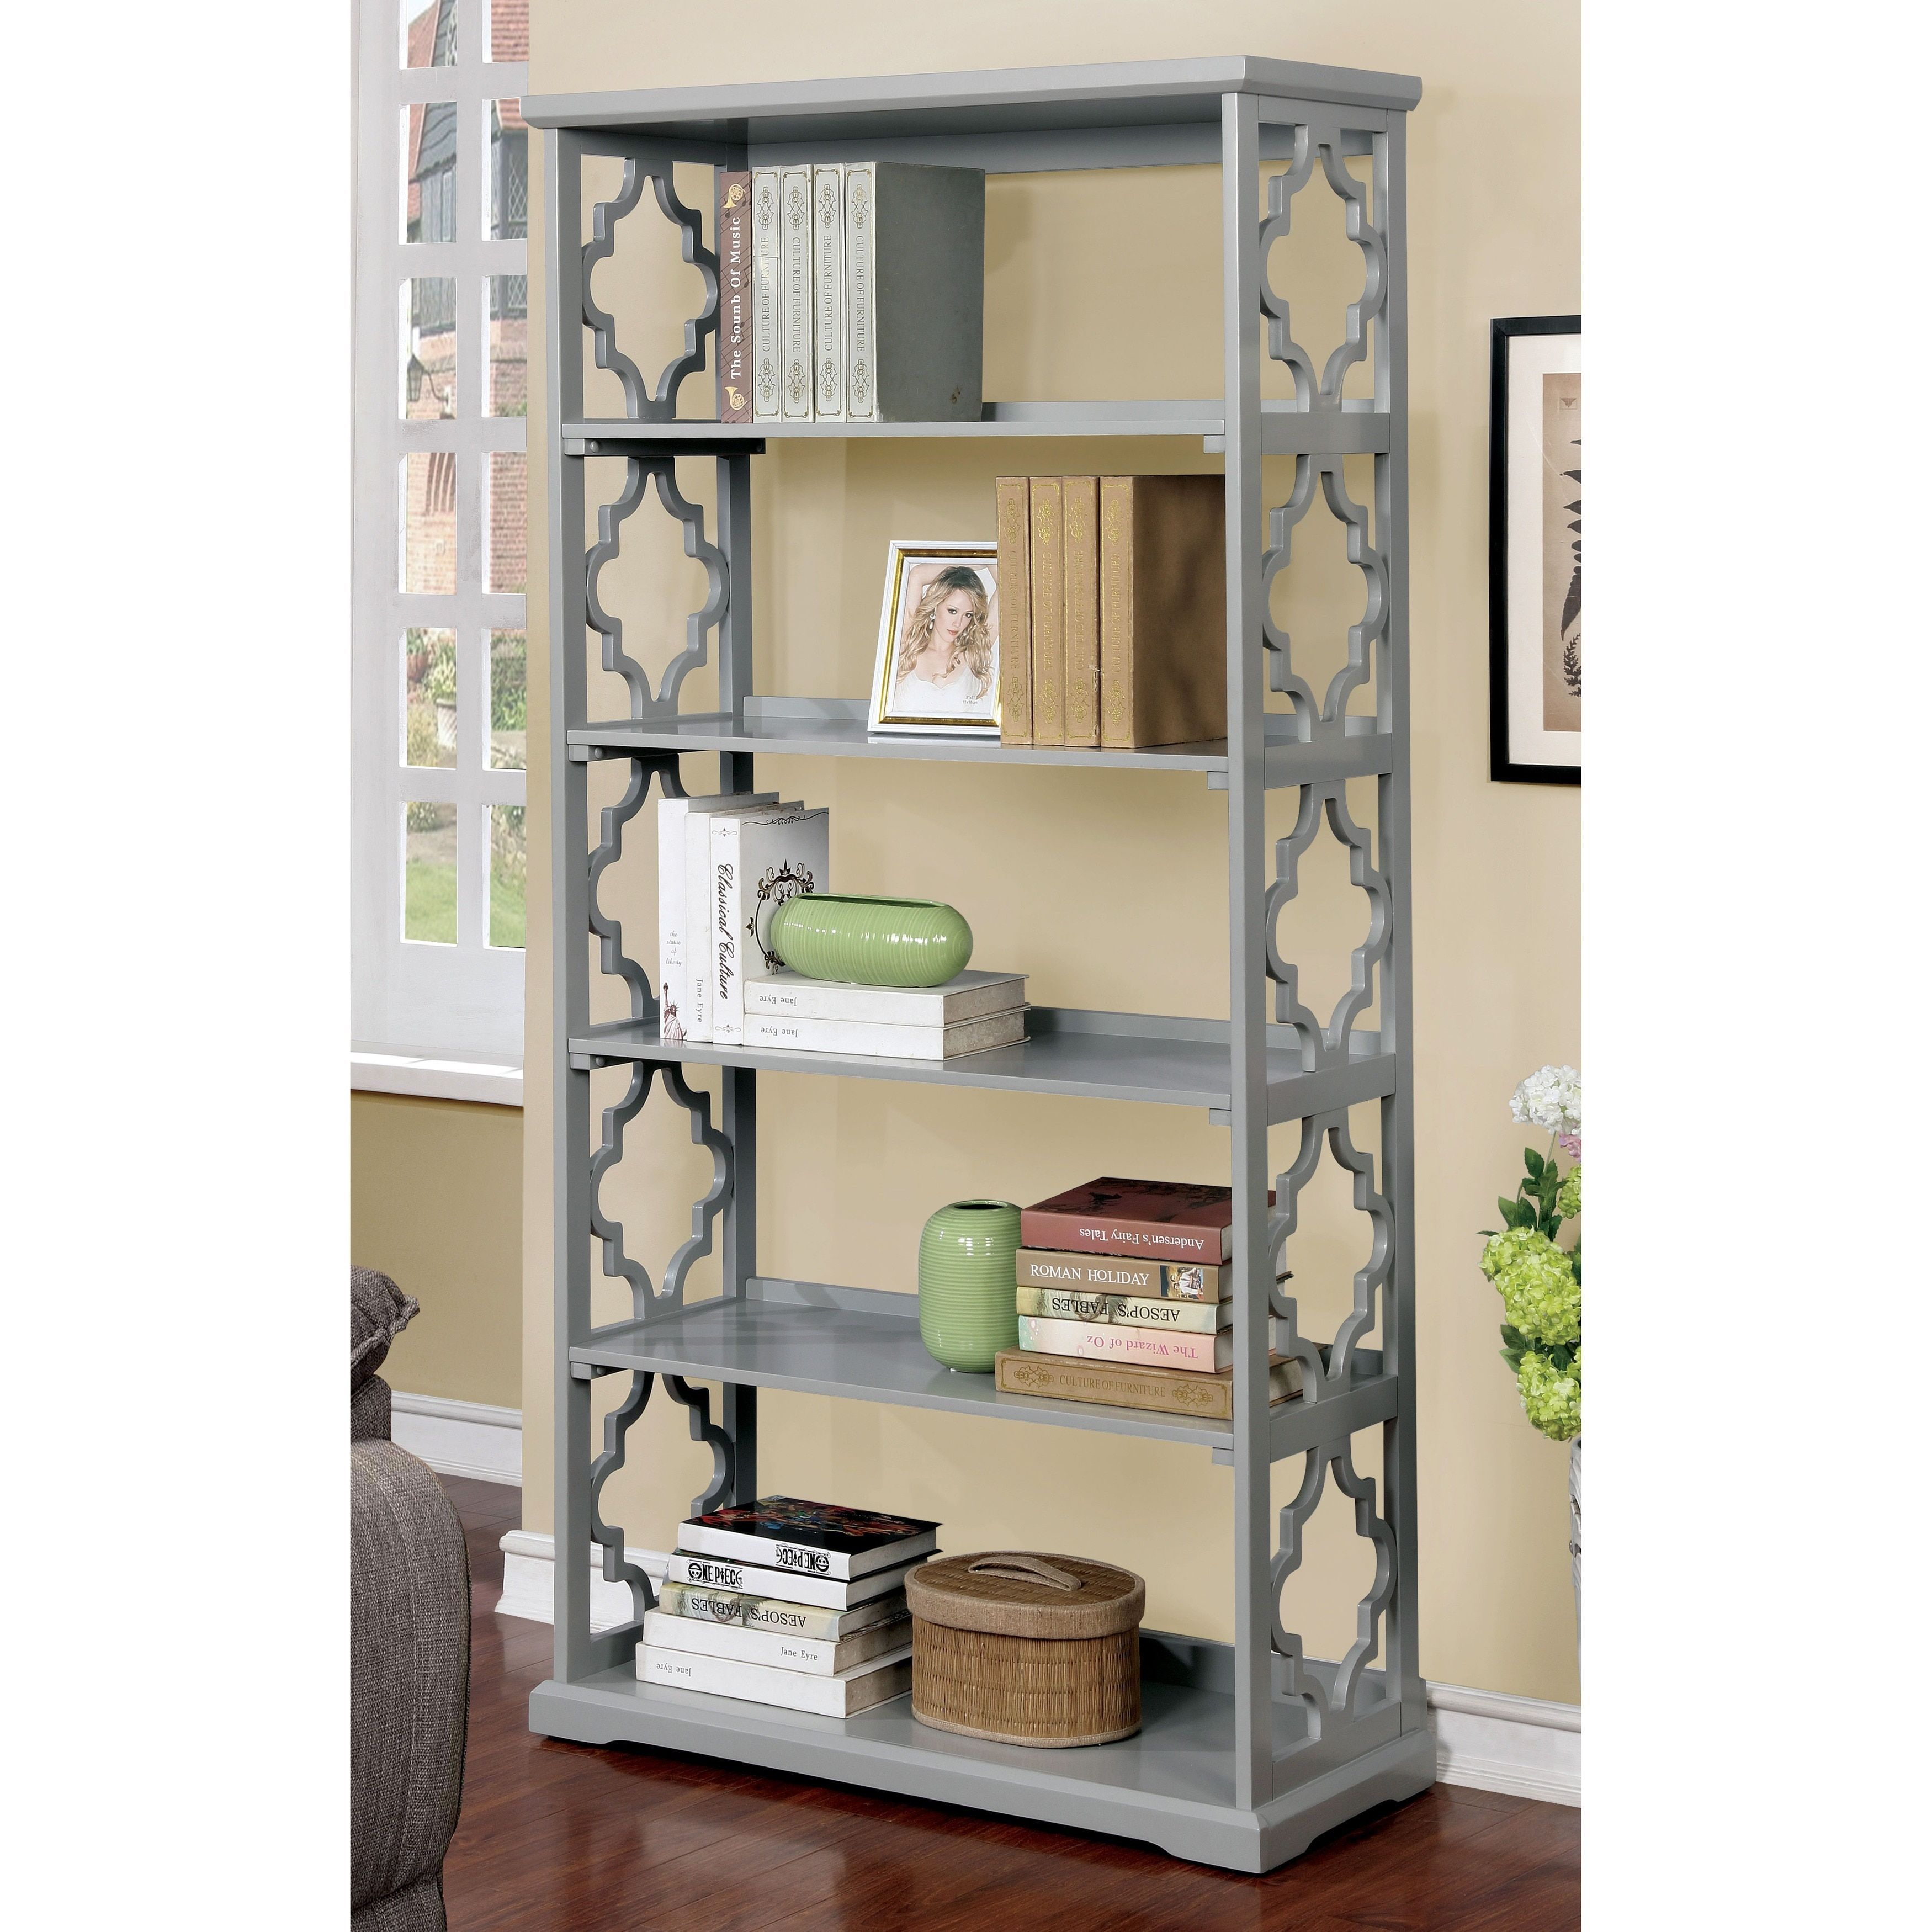 Furniture Of America Mina Contemporary Open 5 Tier Display Shelf (Gray)